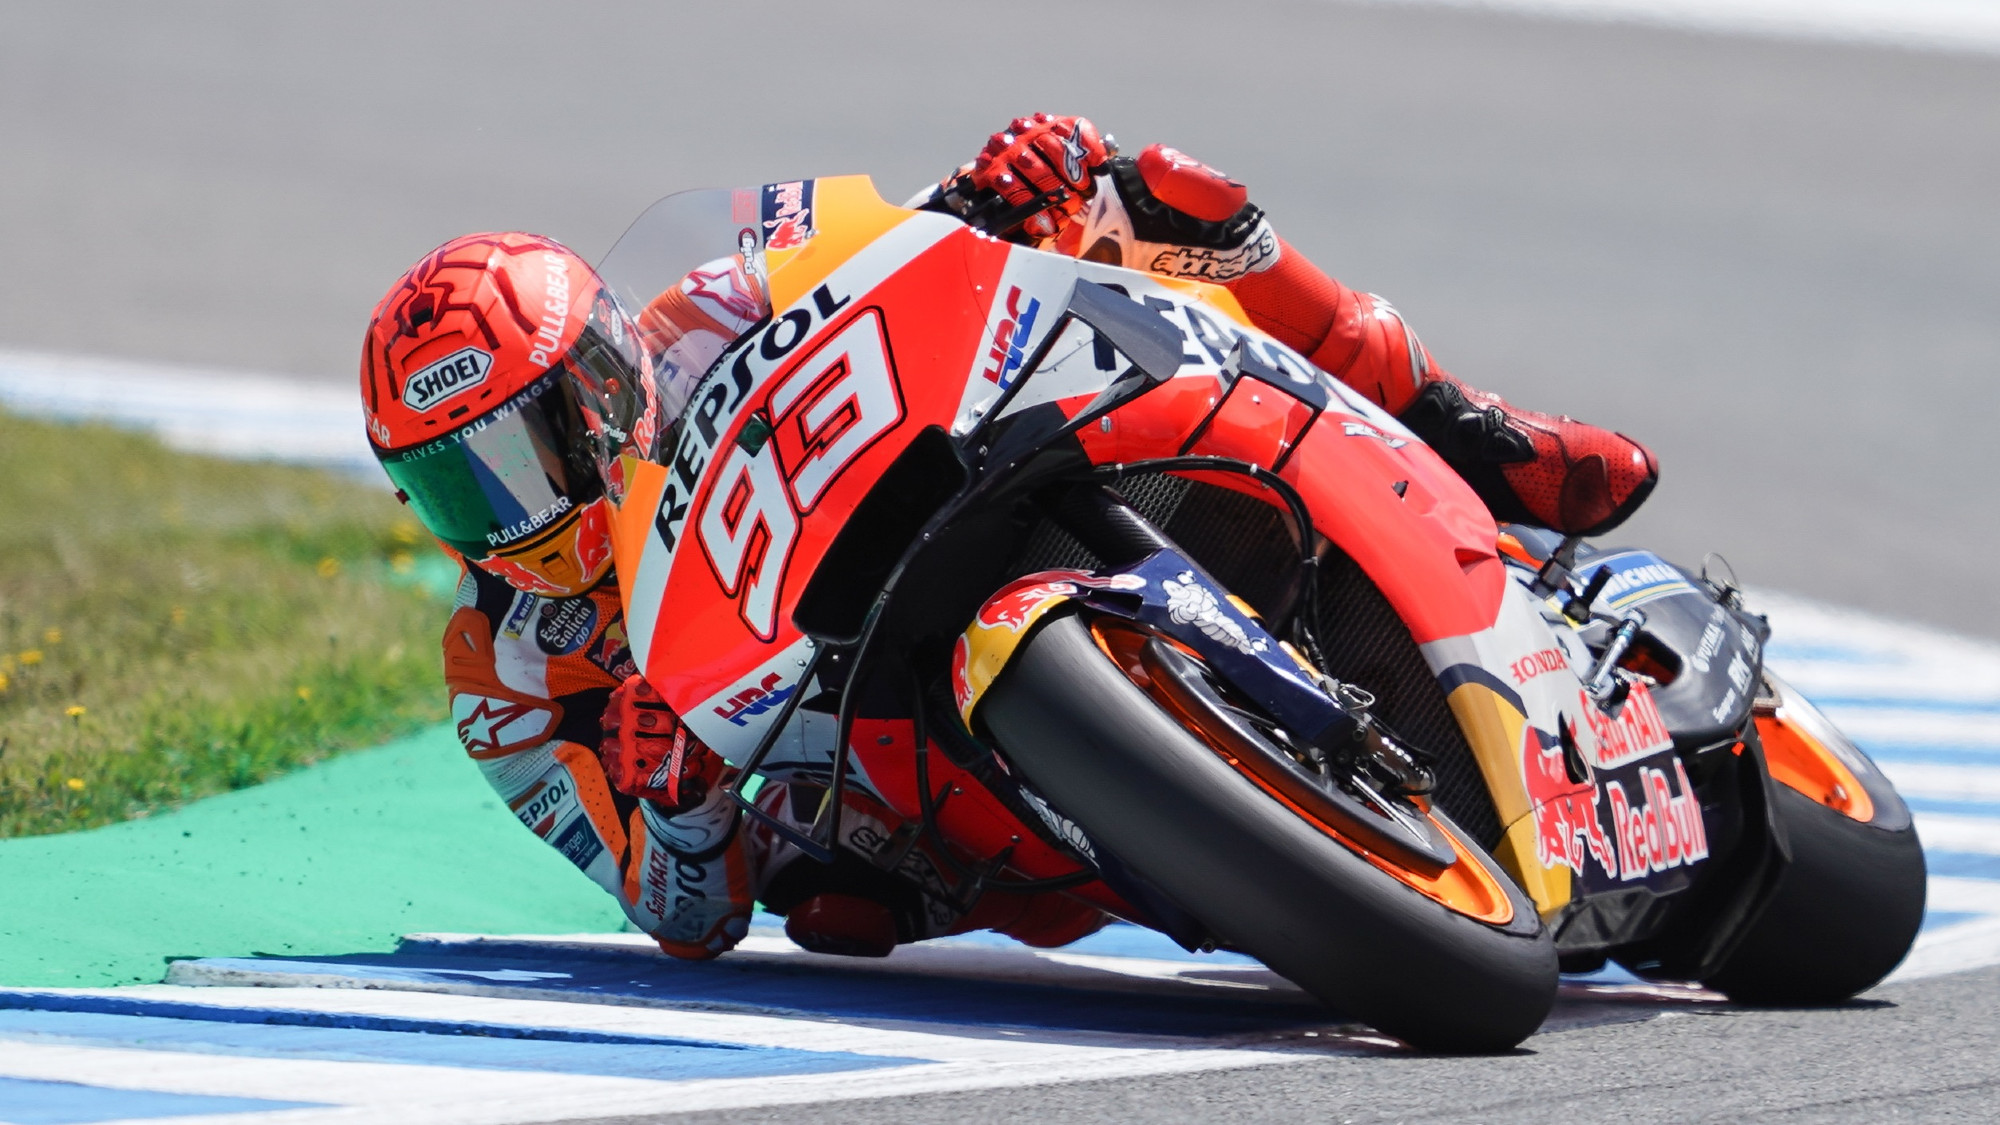 The problem that could spoil Márquez's MotoGP title hopes